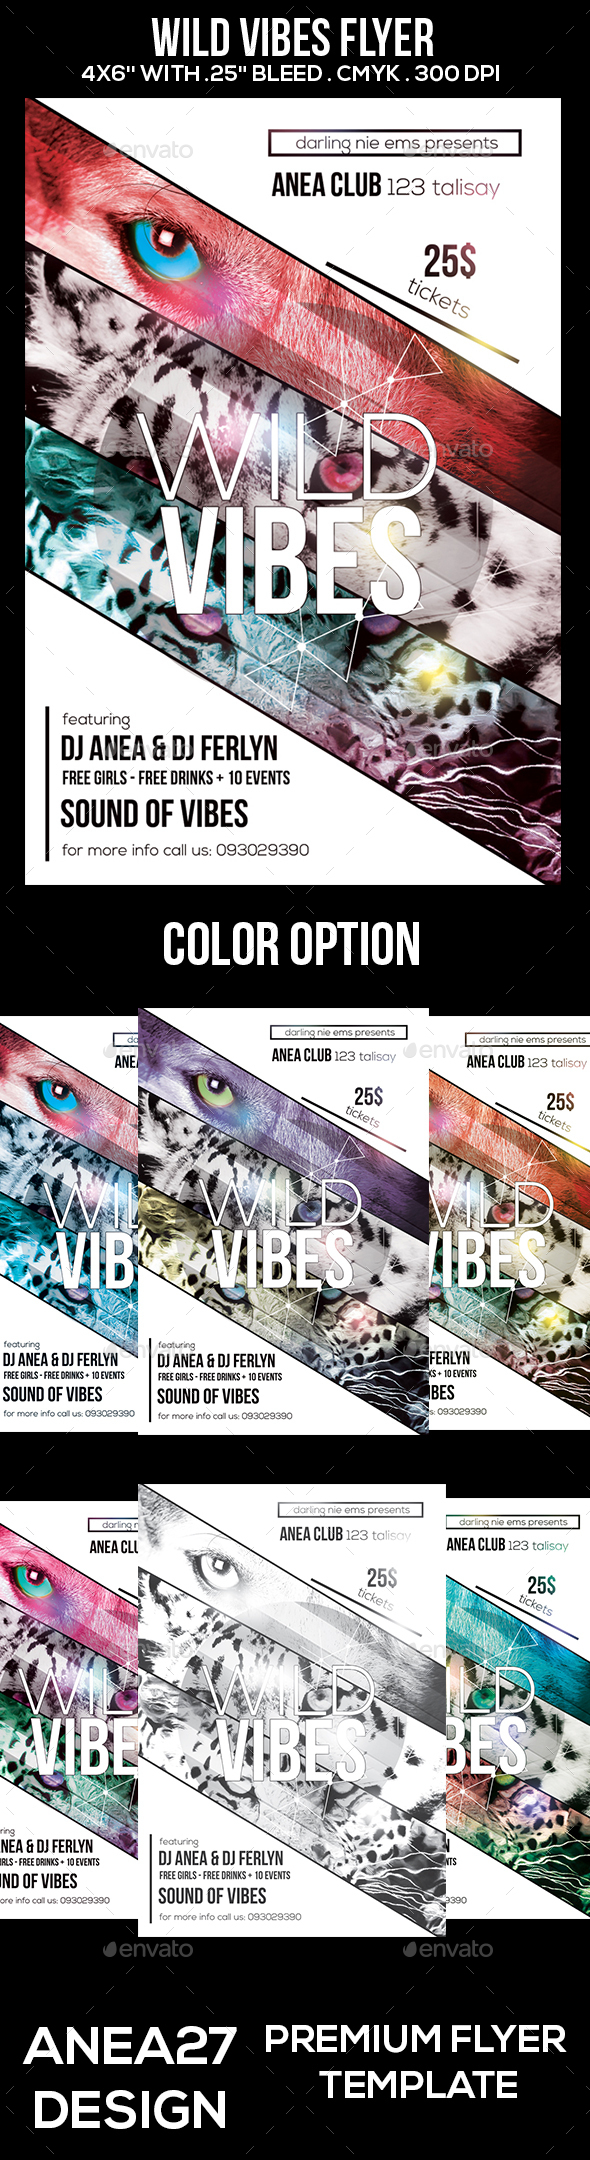 Wild Vibes Flyer - Clubs & Parties Events